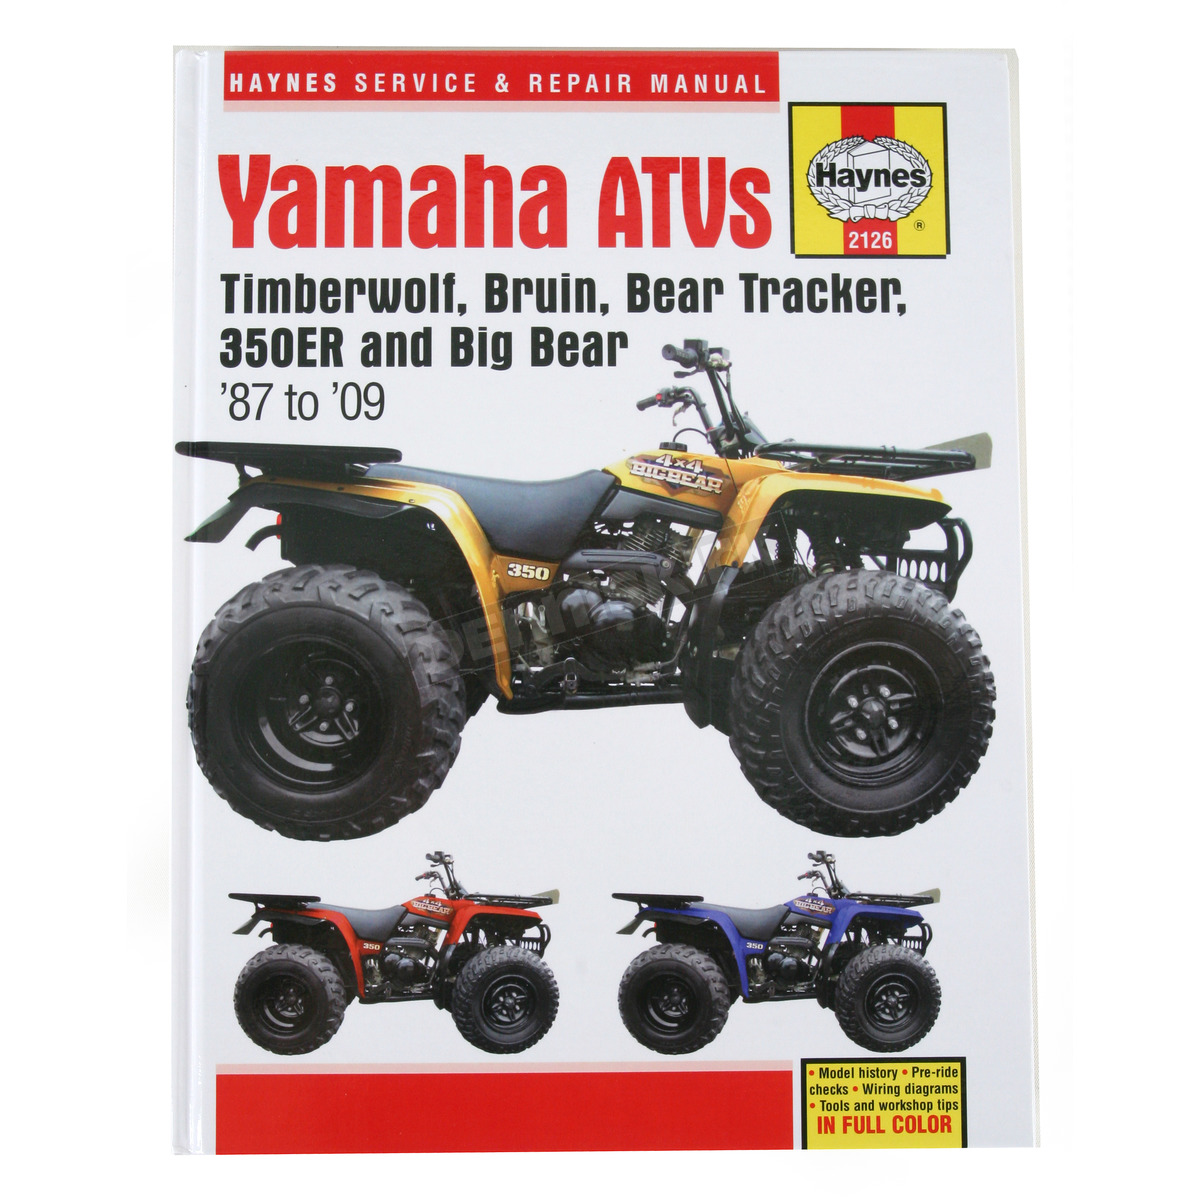 hight resolution of haynes yamaha repair manual 2126